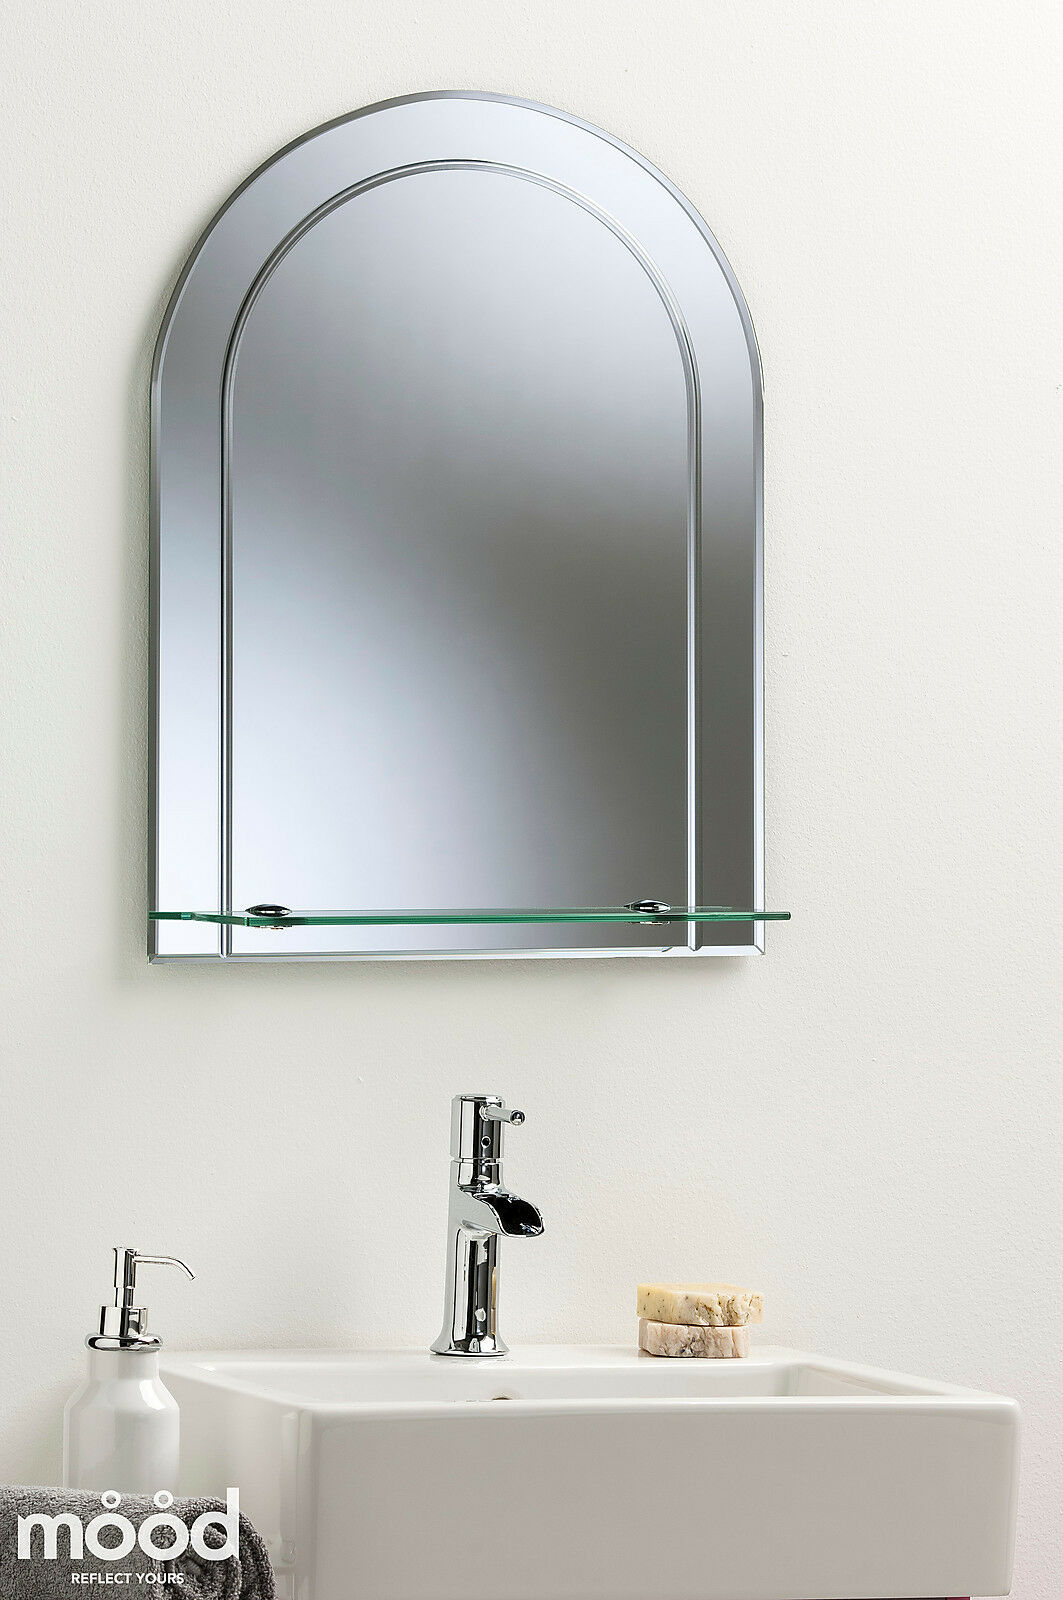 etched glass mirrors bathroom pretty arch bathroom wall mirror modern stylish with shelf 18252